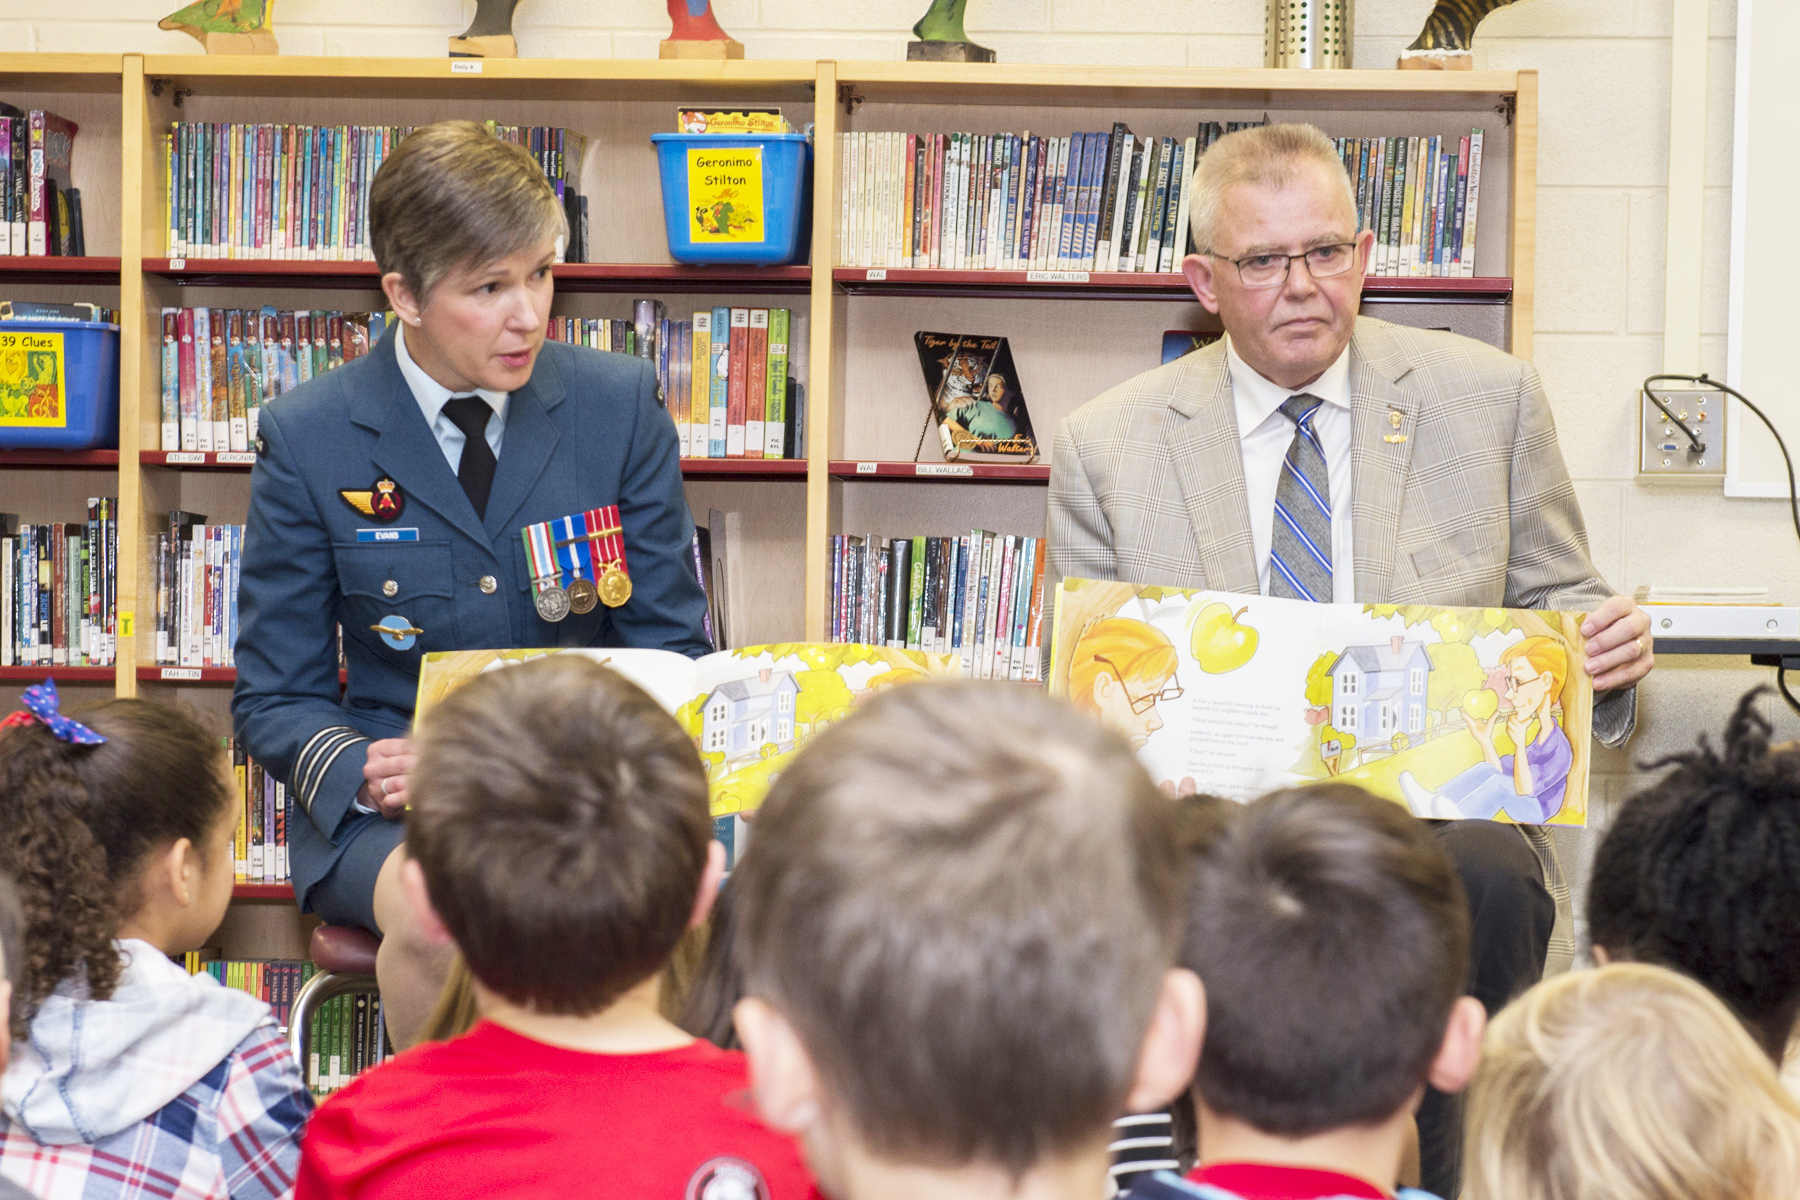 A woman in a blue uniform with medals and a man in a beige suit, both facing the camera, sit in a classroom and read to a group of young children who are sitting with their backs to the camera.